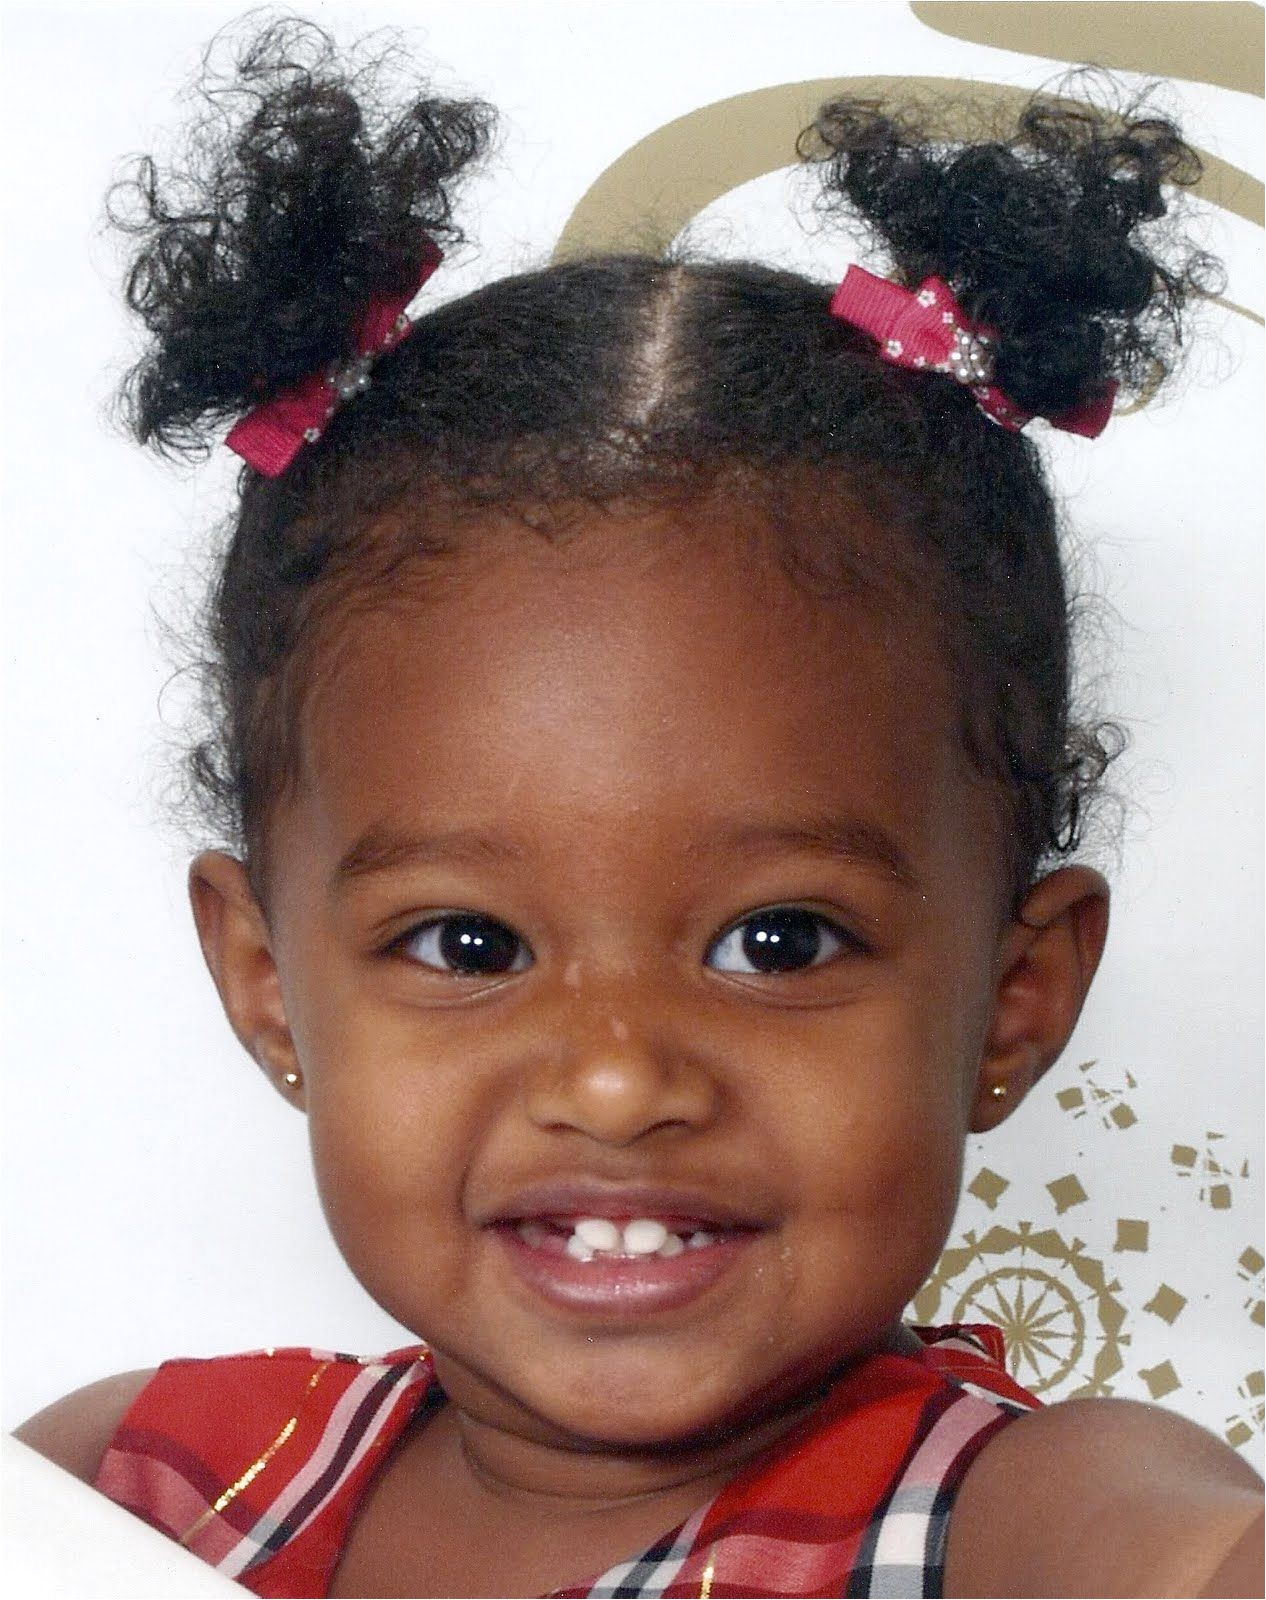 1 Year Old Black Baby Girl Hairstyles All American Parents Magazine includes parenting tips for all parents raising black children